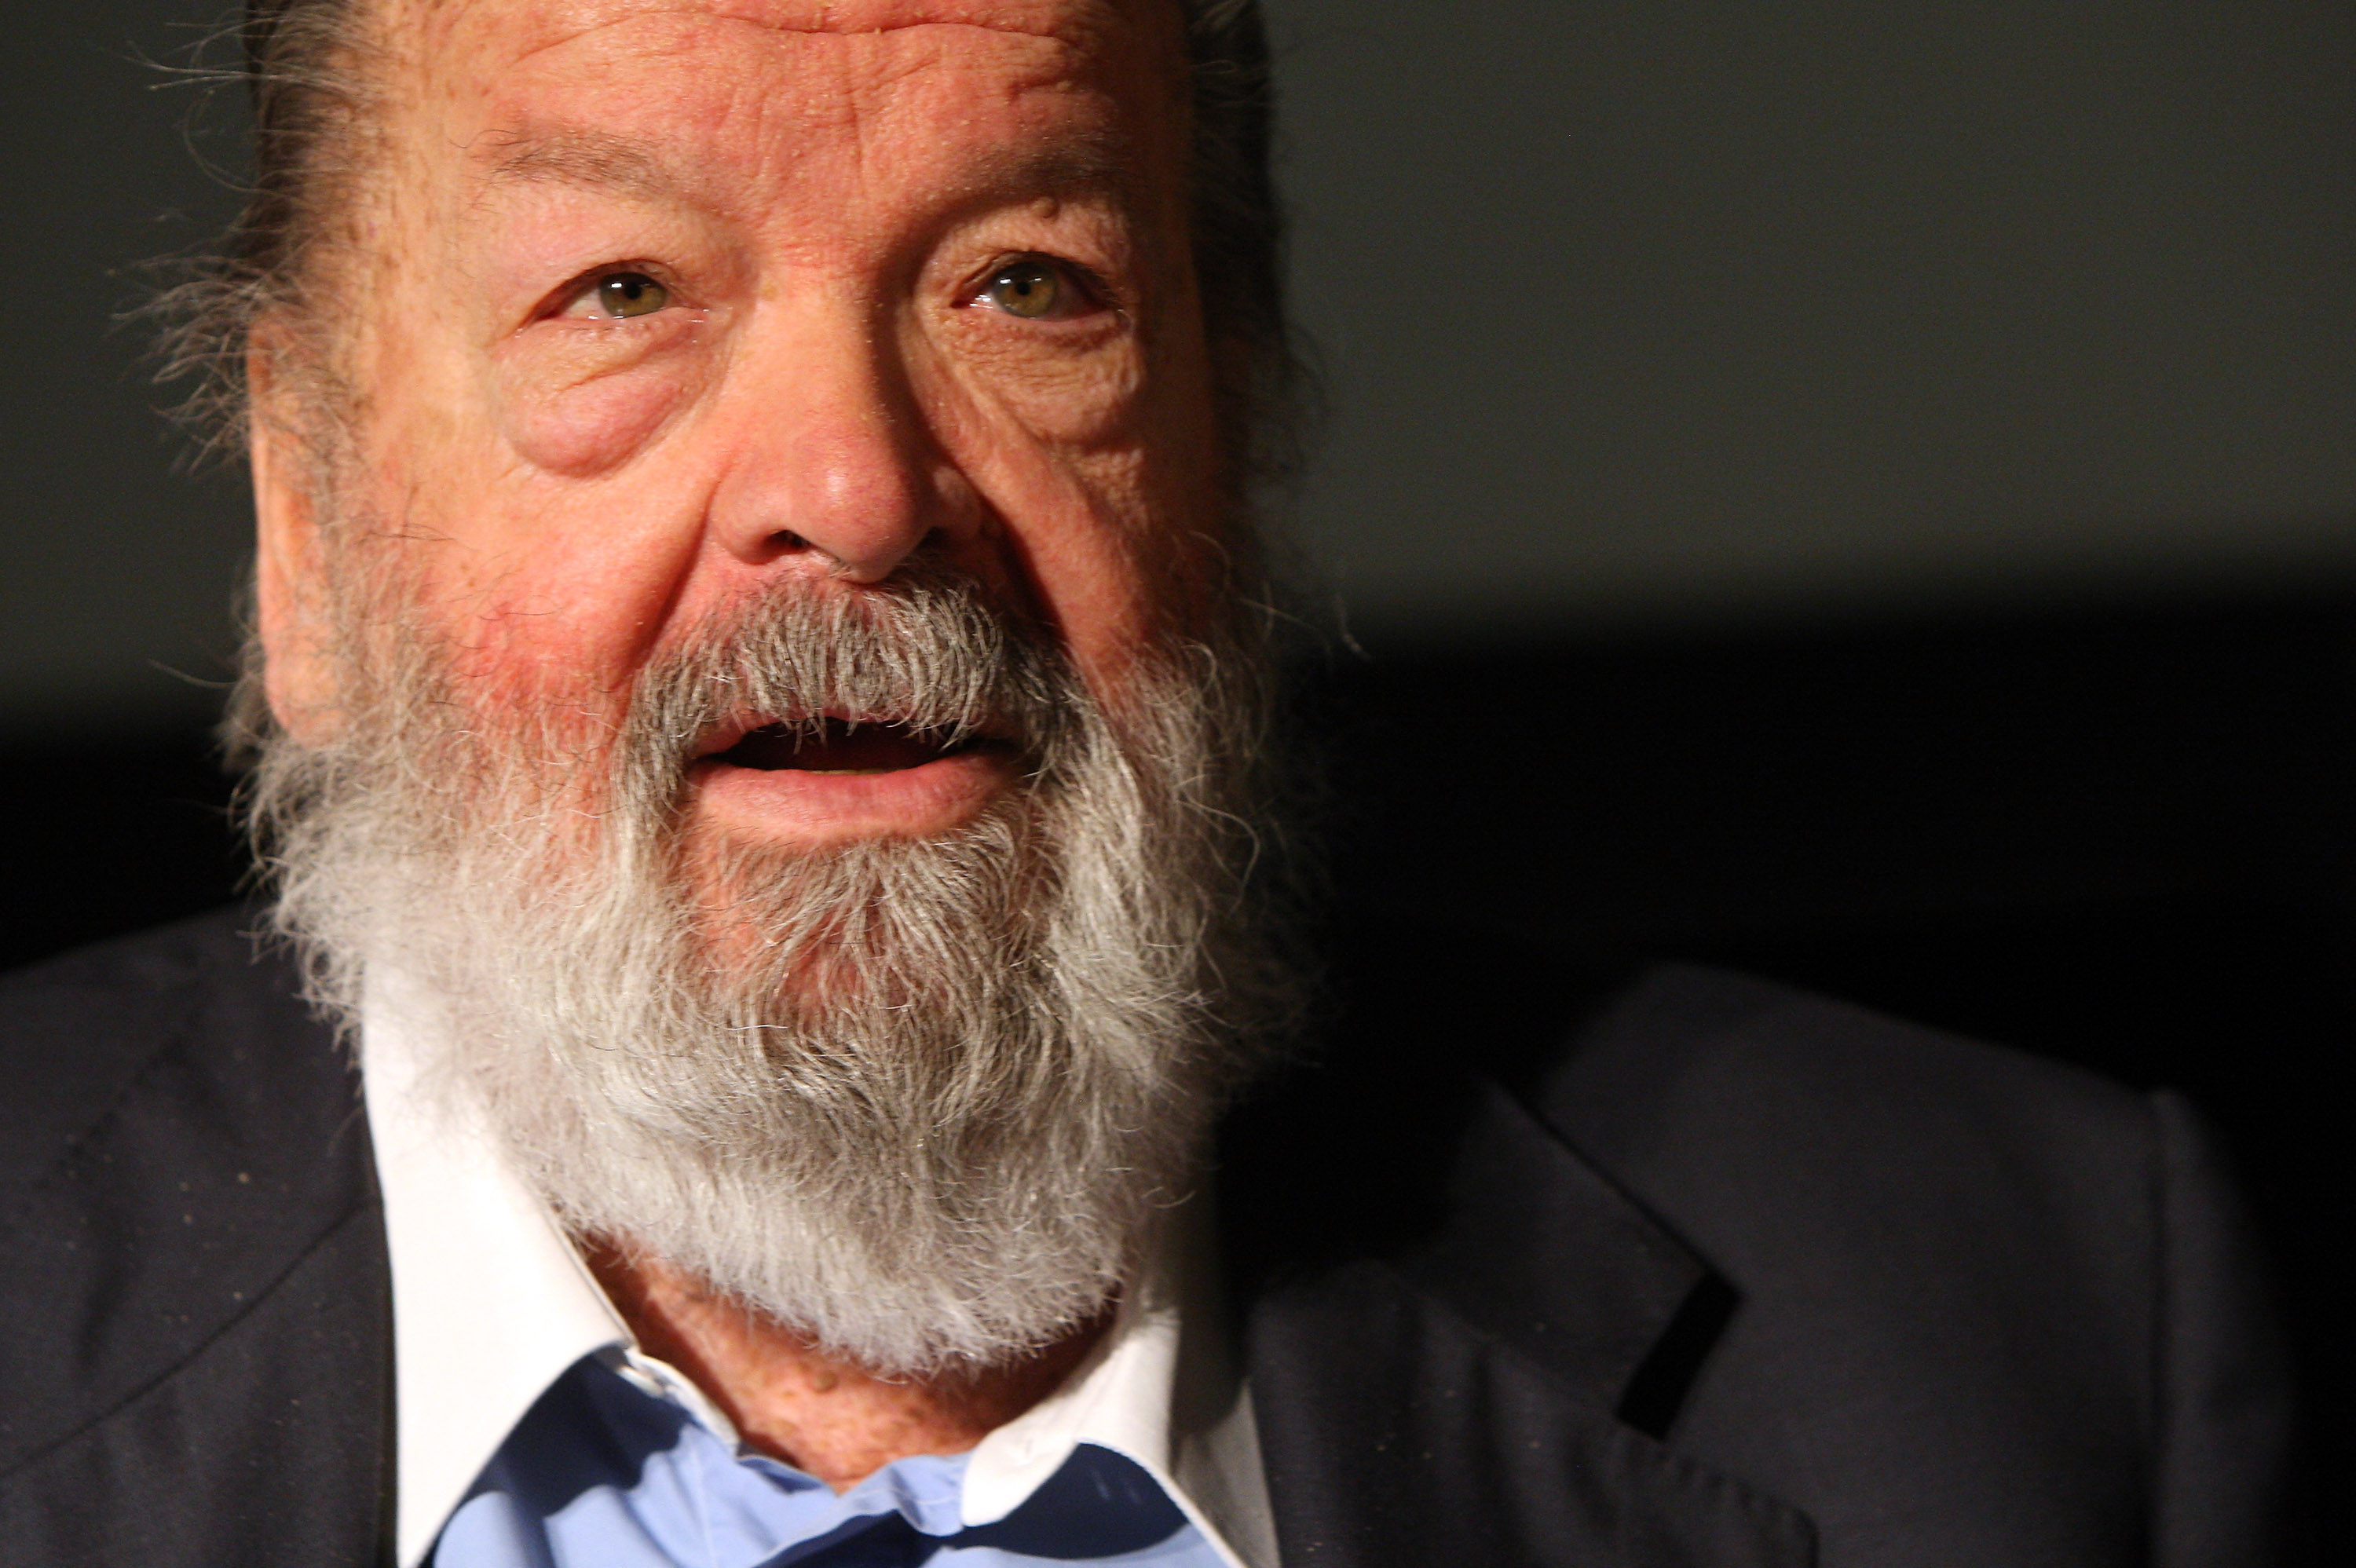 Bud Spencer, Italian actor, film producer, pilot and former professional swimmer, signs copies of the German translation of his autobiography, Mein Leben, Meine Filme (My Life, My Films) on May 17, 2013, in Potsdam, Germany